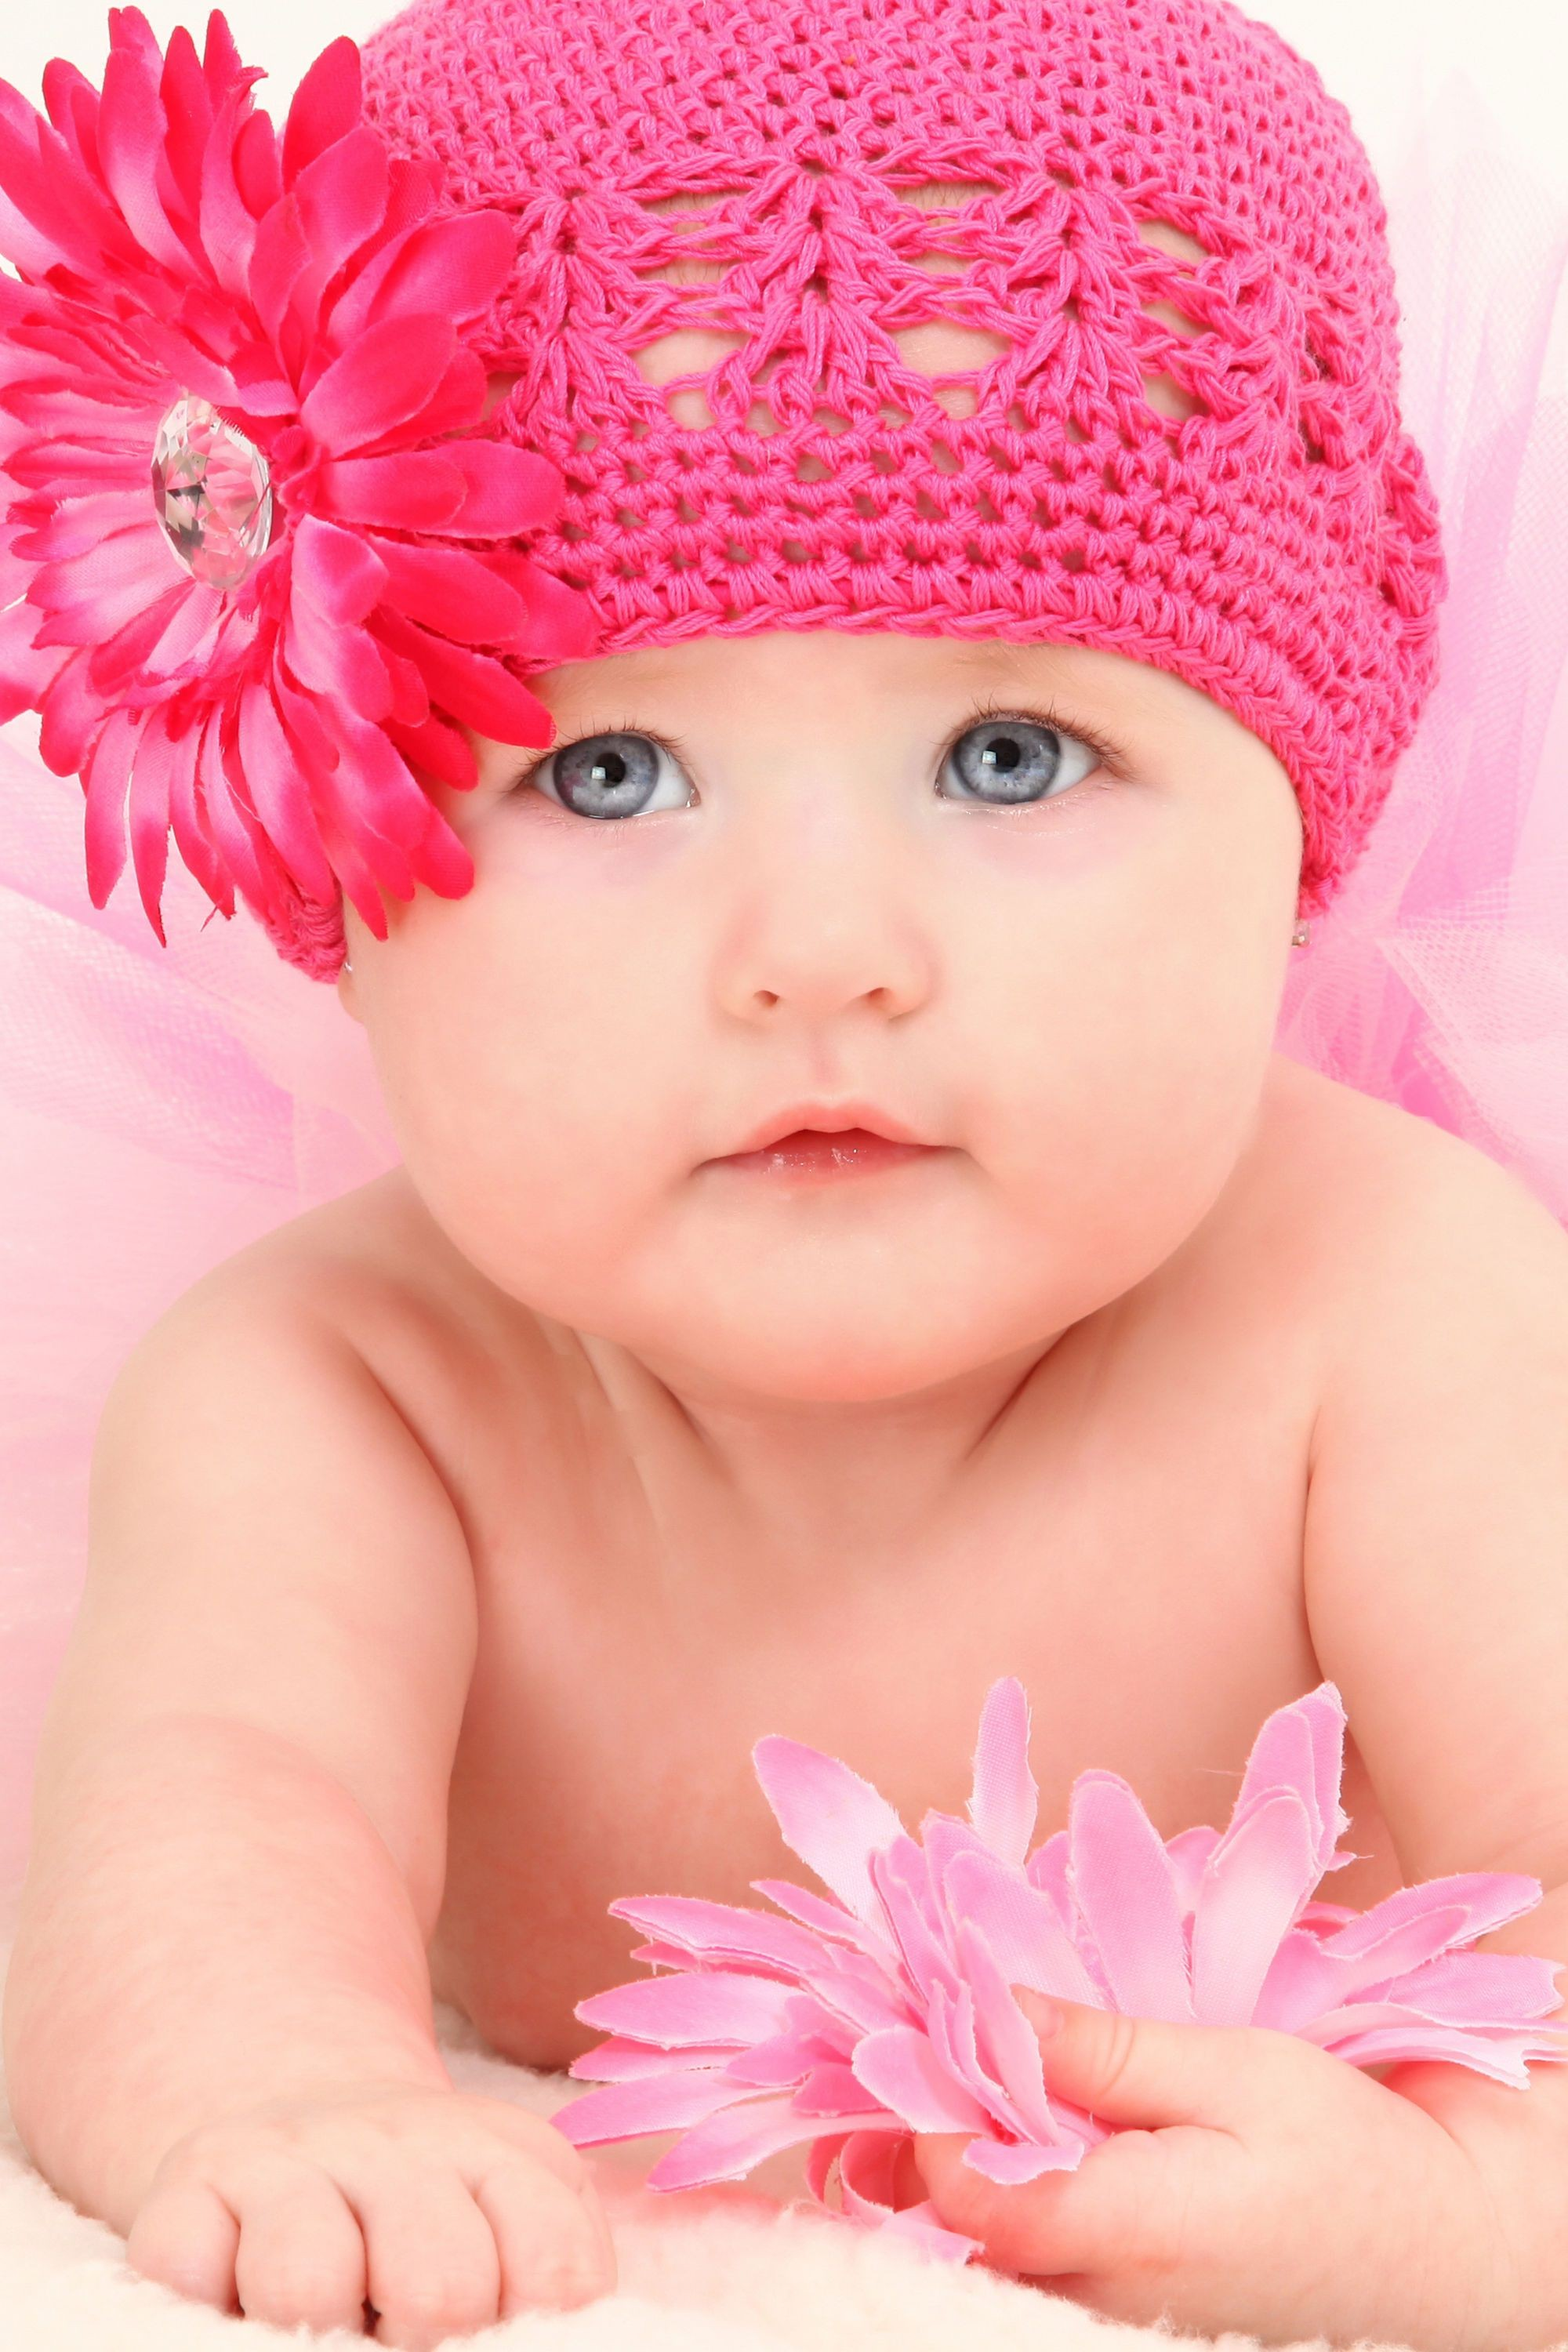 Baby Pictures Wallpapers Posted By Michelle Thompson